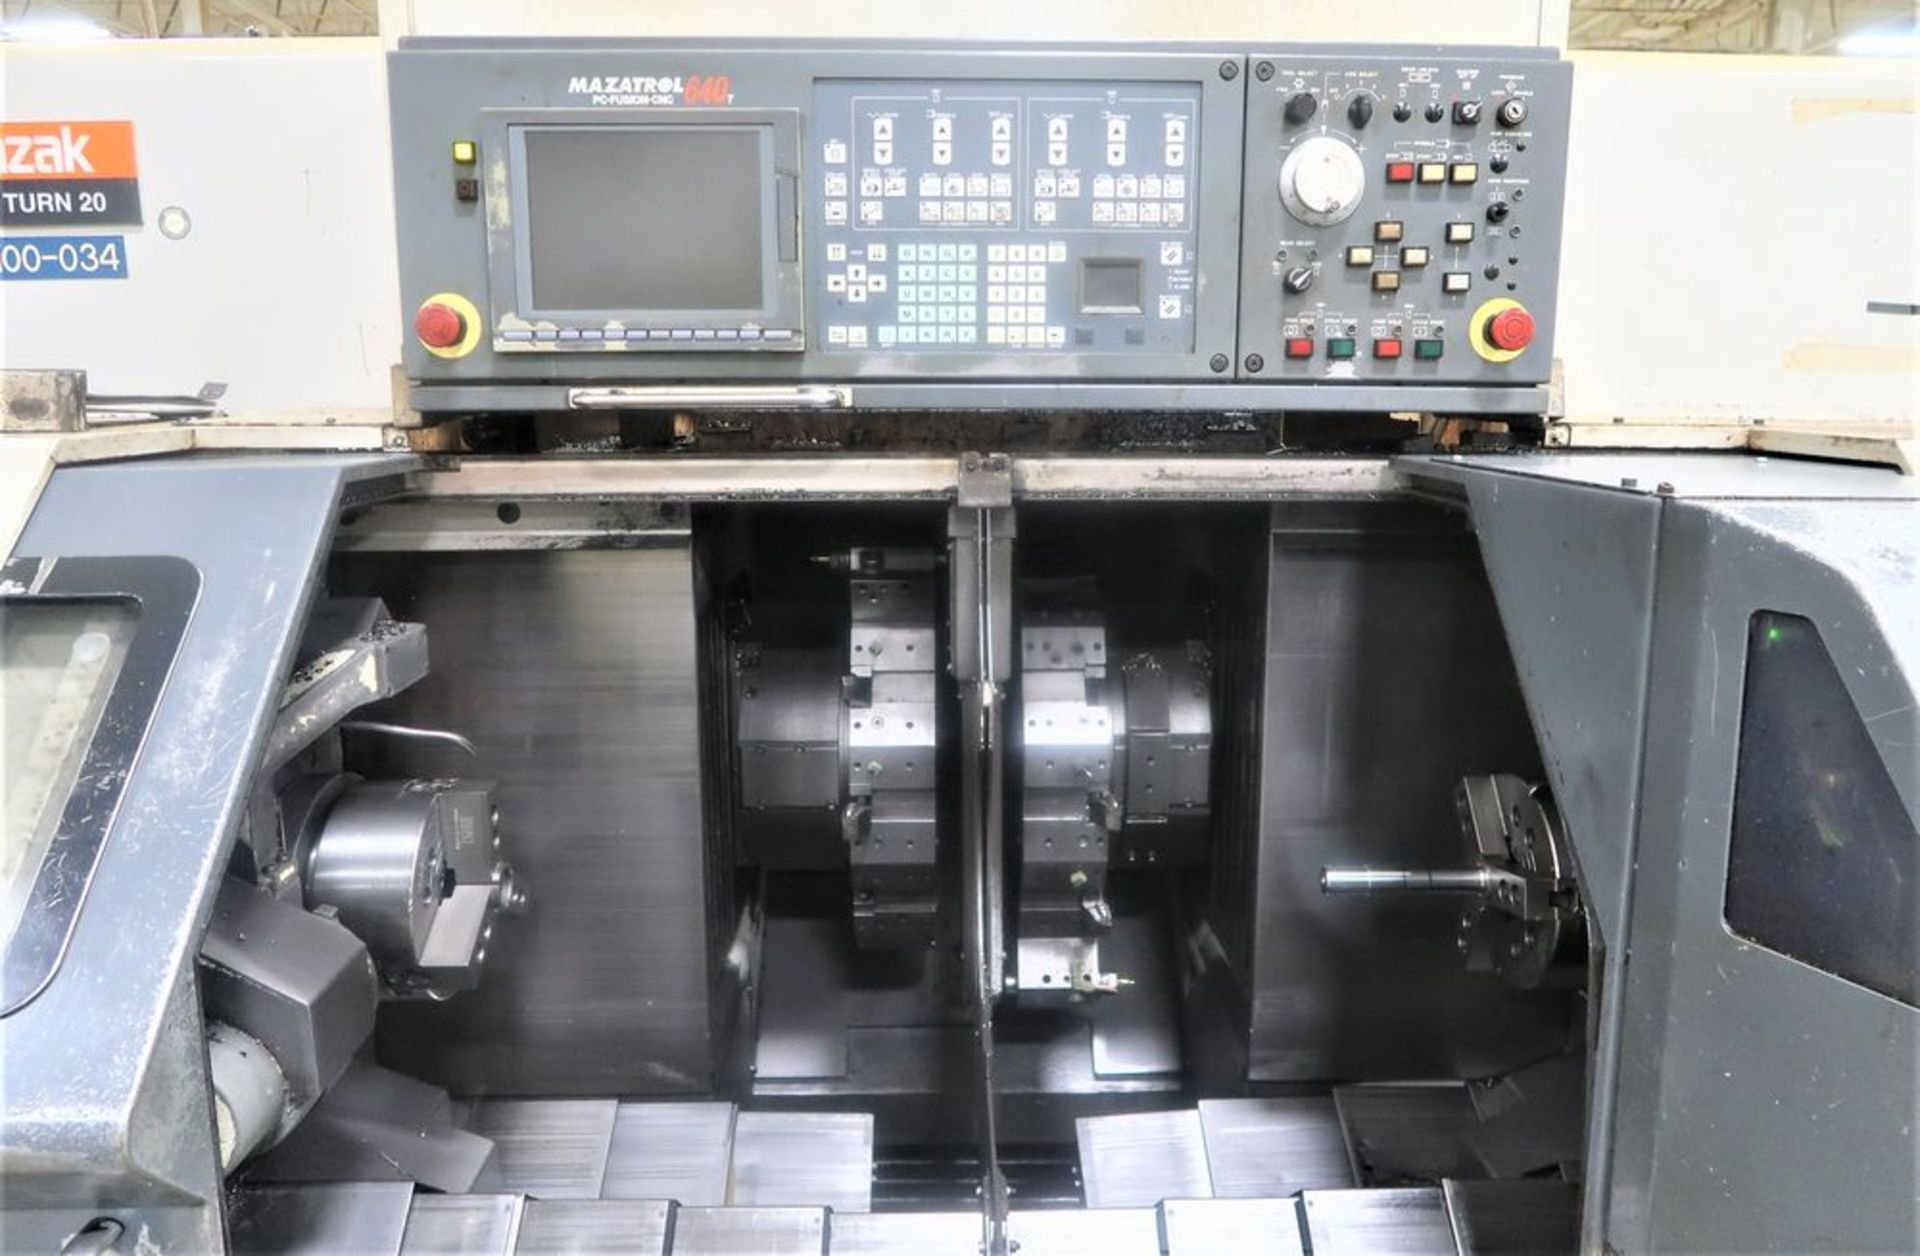 Lot 25 - Mazak Dual Turn 20 Twin Spindle CNC Turning Center Lathe, S/N 141828